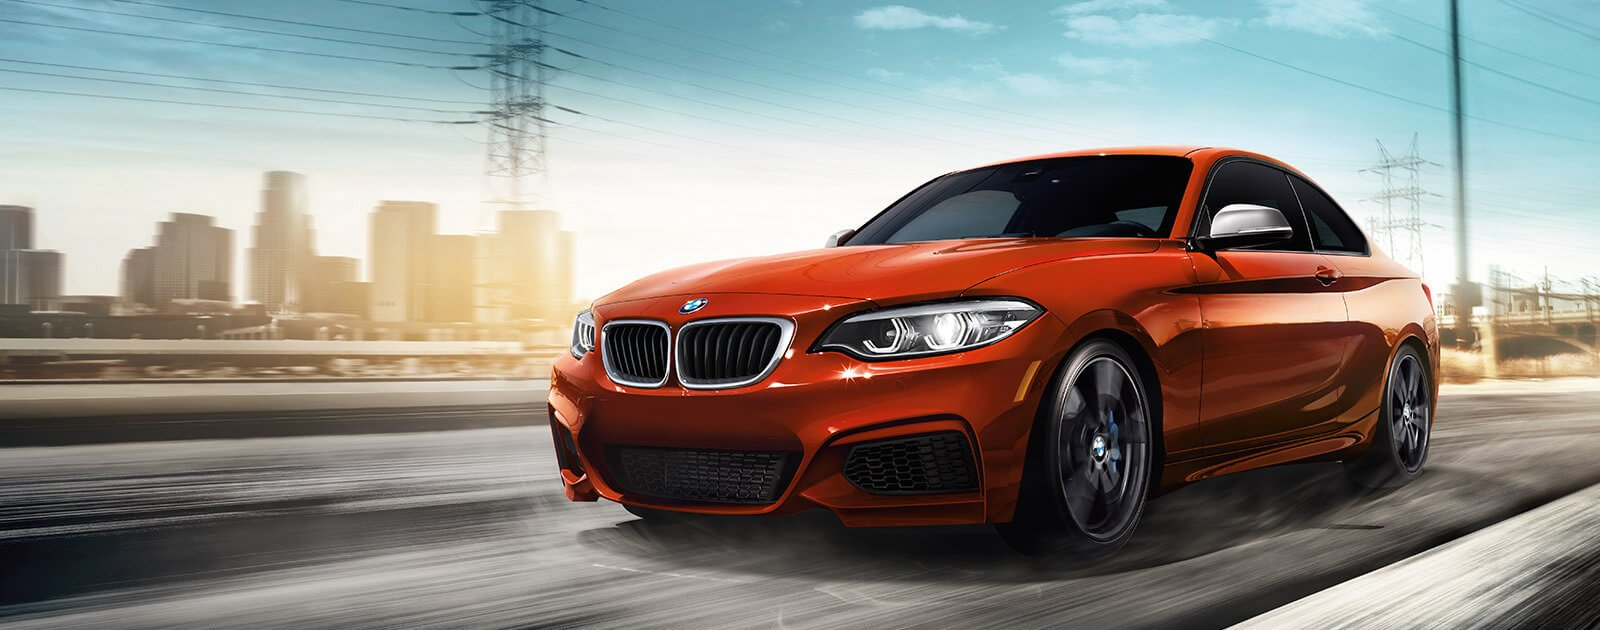 Bmw Owings Mills >> New Bmw 2 Series Leases Prices Owings Mills Md